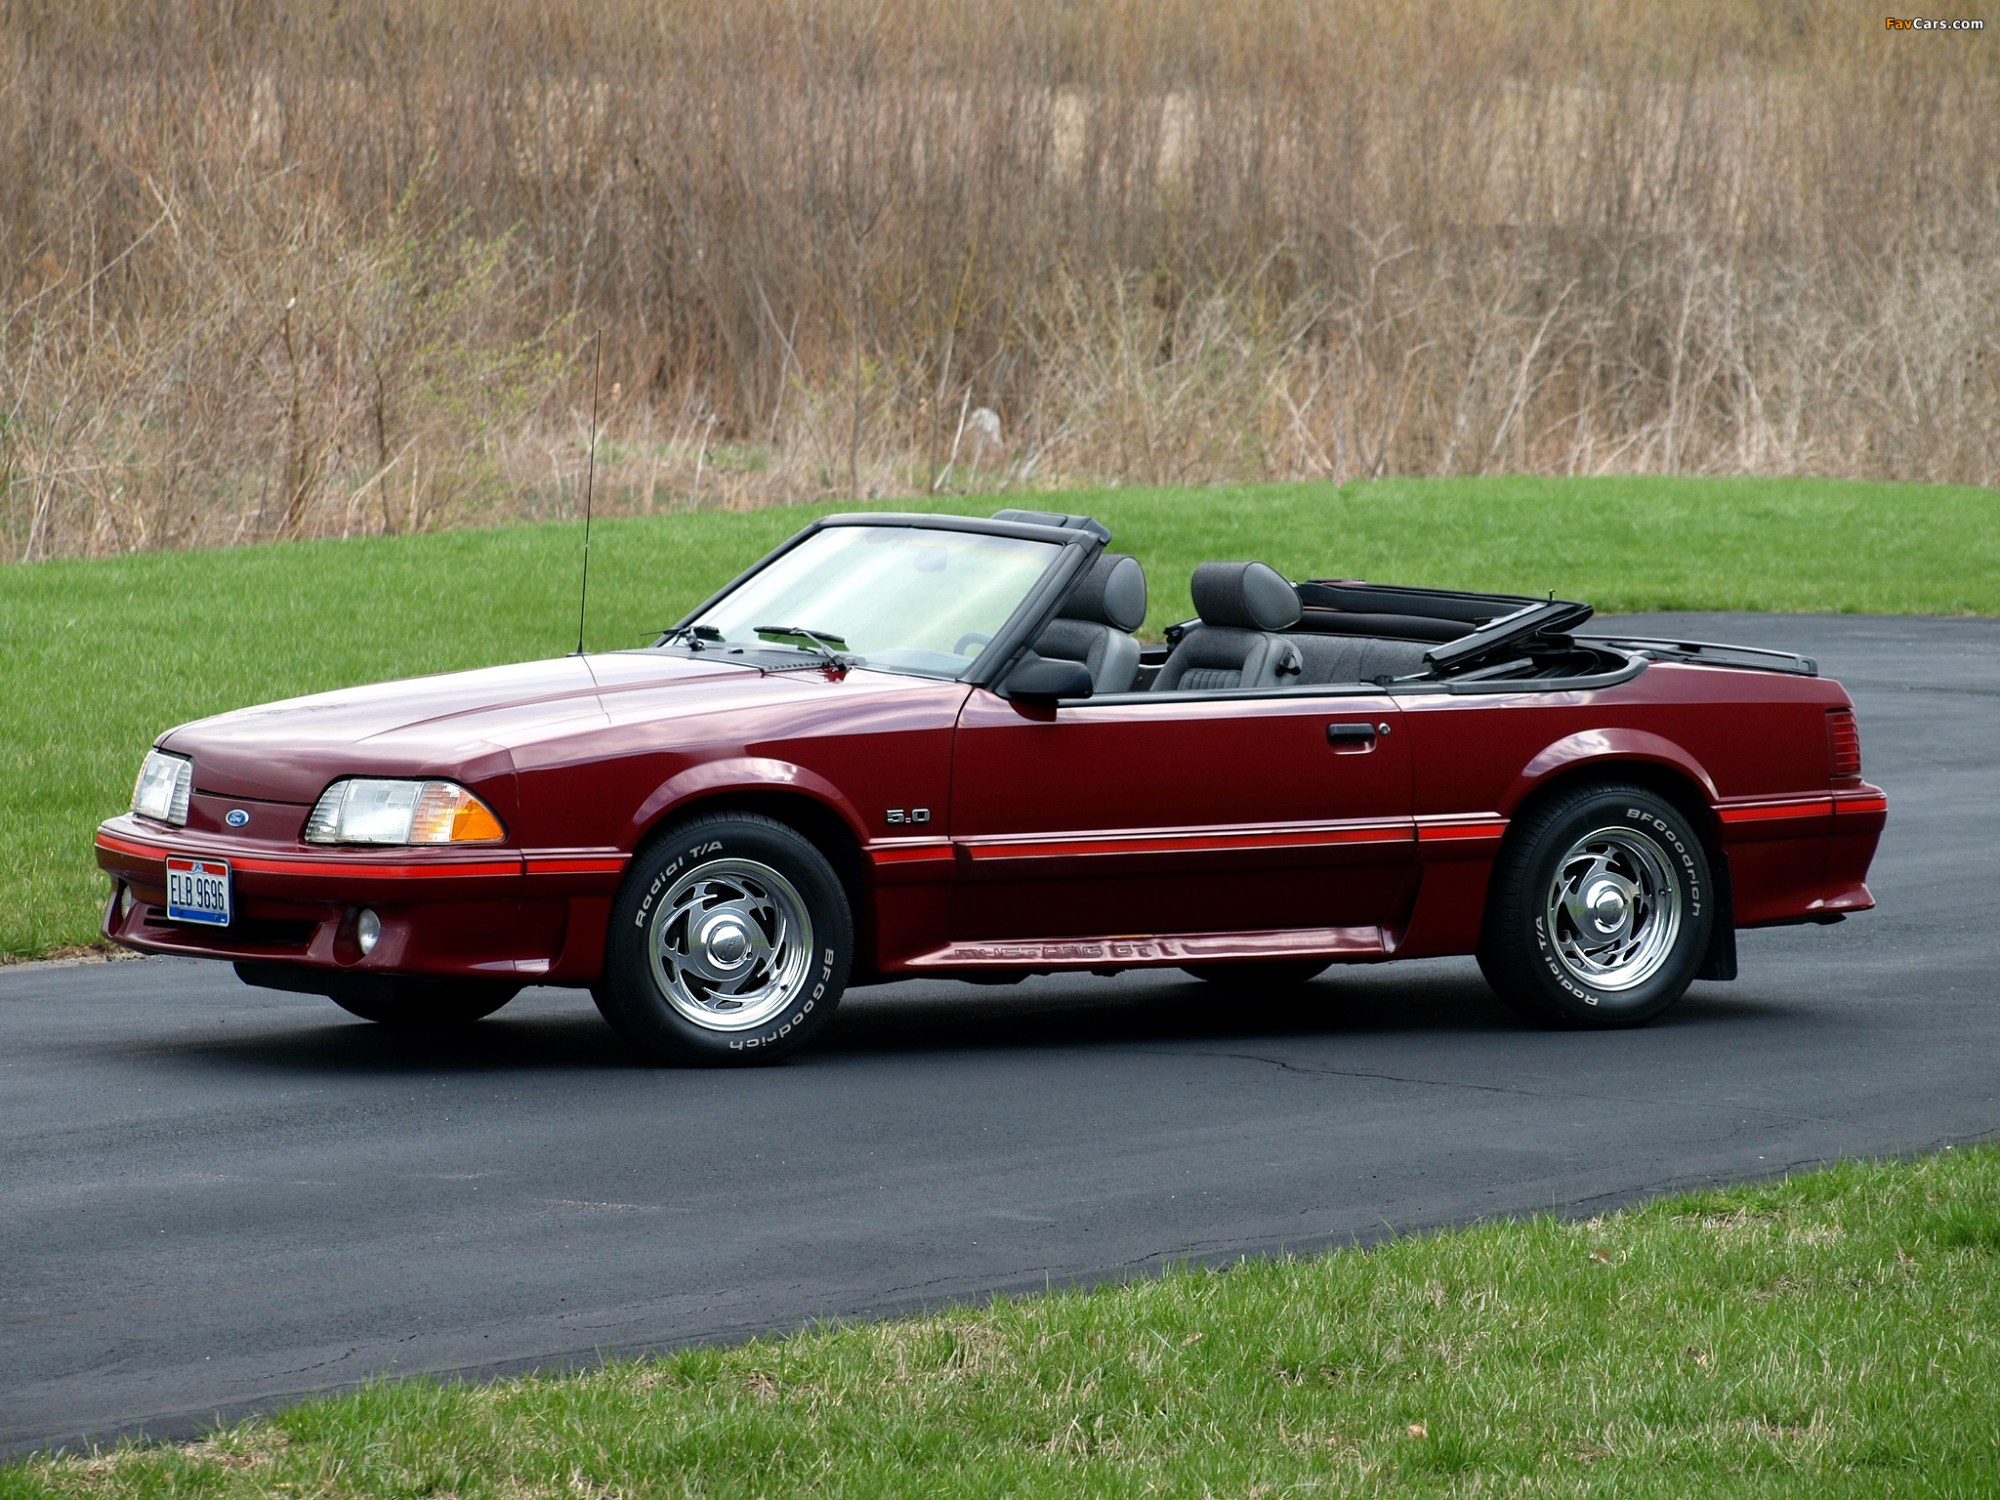 hight resolution of mustang gt 5 0 convertible 1987 93 wallpapers 2048 x 1536